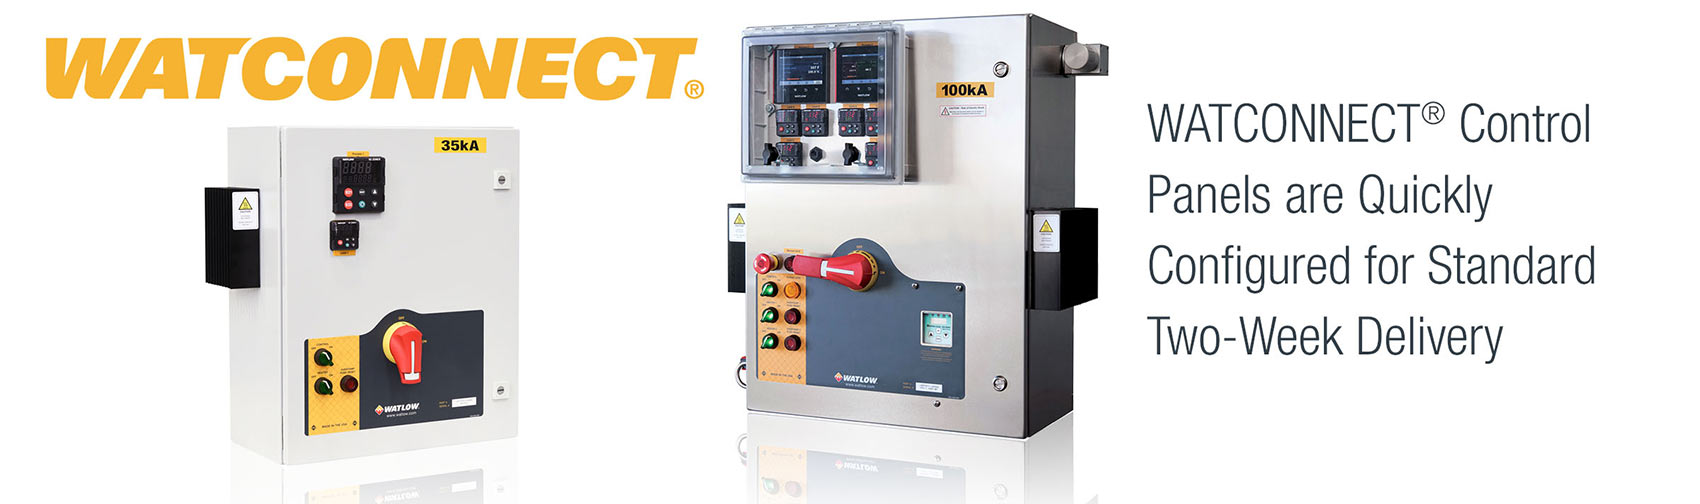 Watlow Home Top 10 Best Circuit Breaker Finder 2016 The Watconnect Line Of Control Panels Offer A Complete Thermal Solution Tailored To Your Application At An Industry Leading Delivery Time Read More